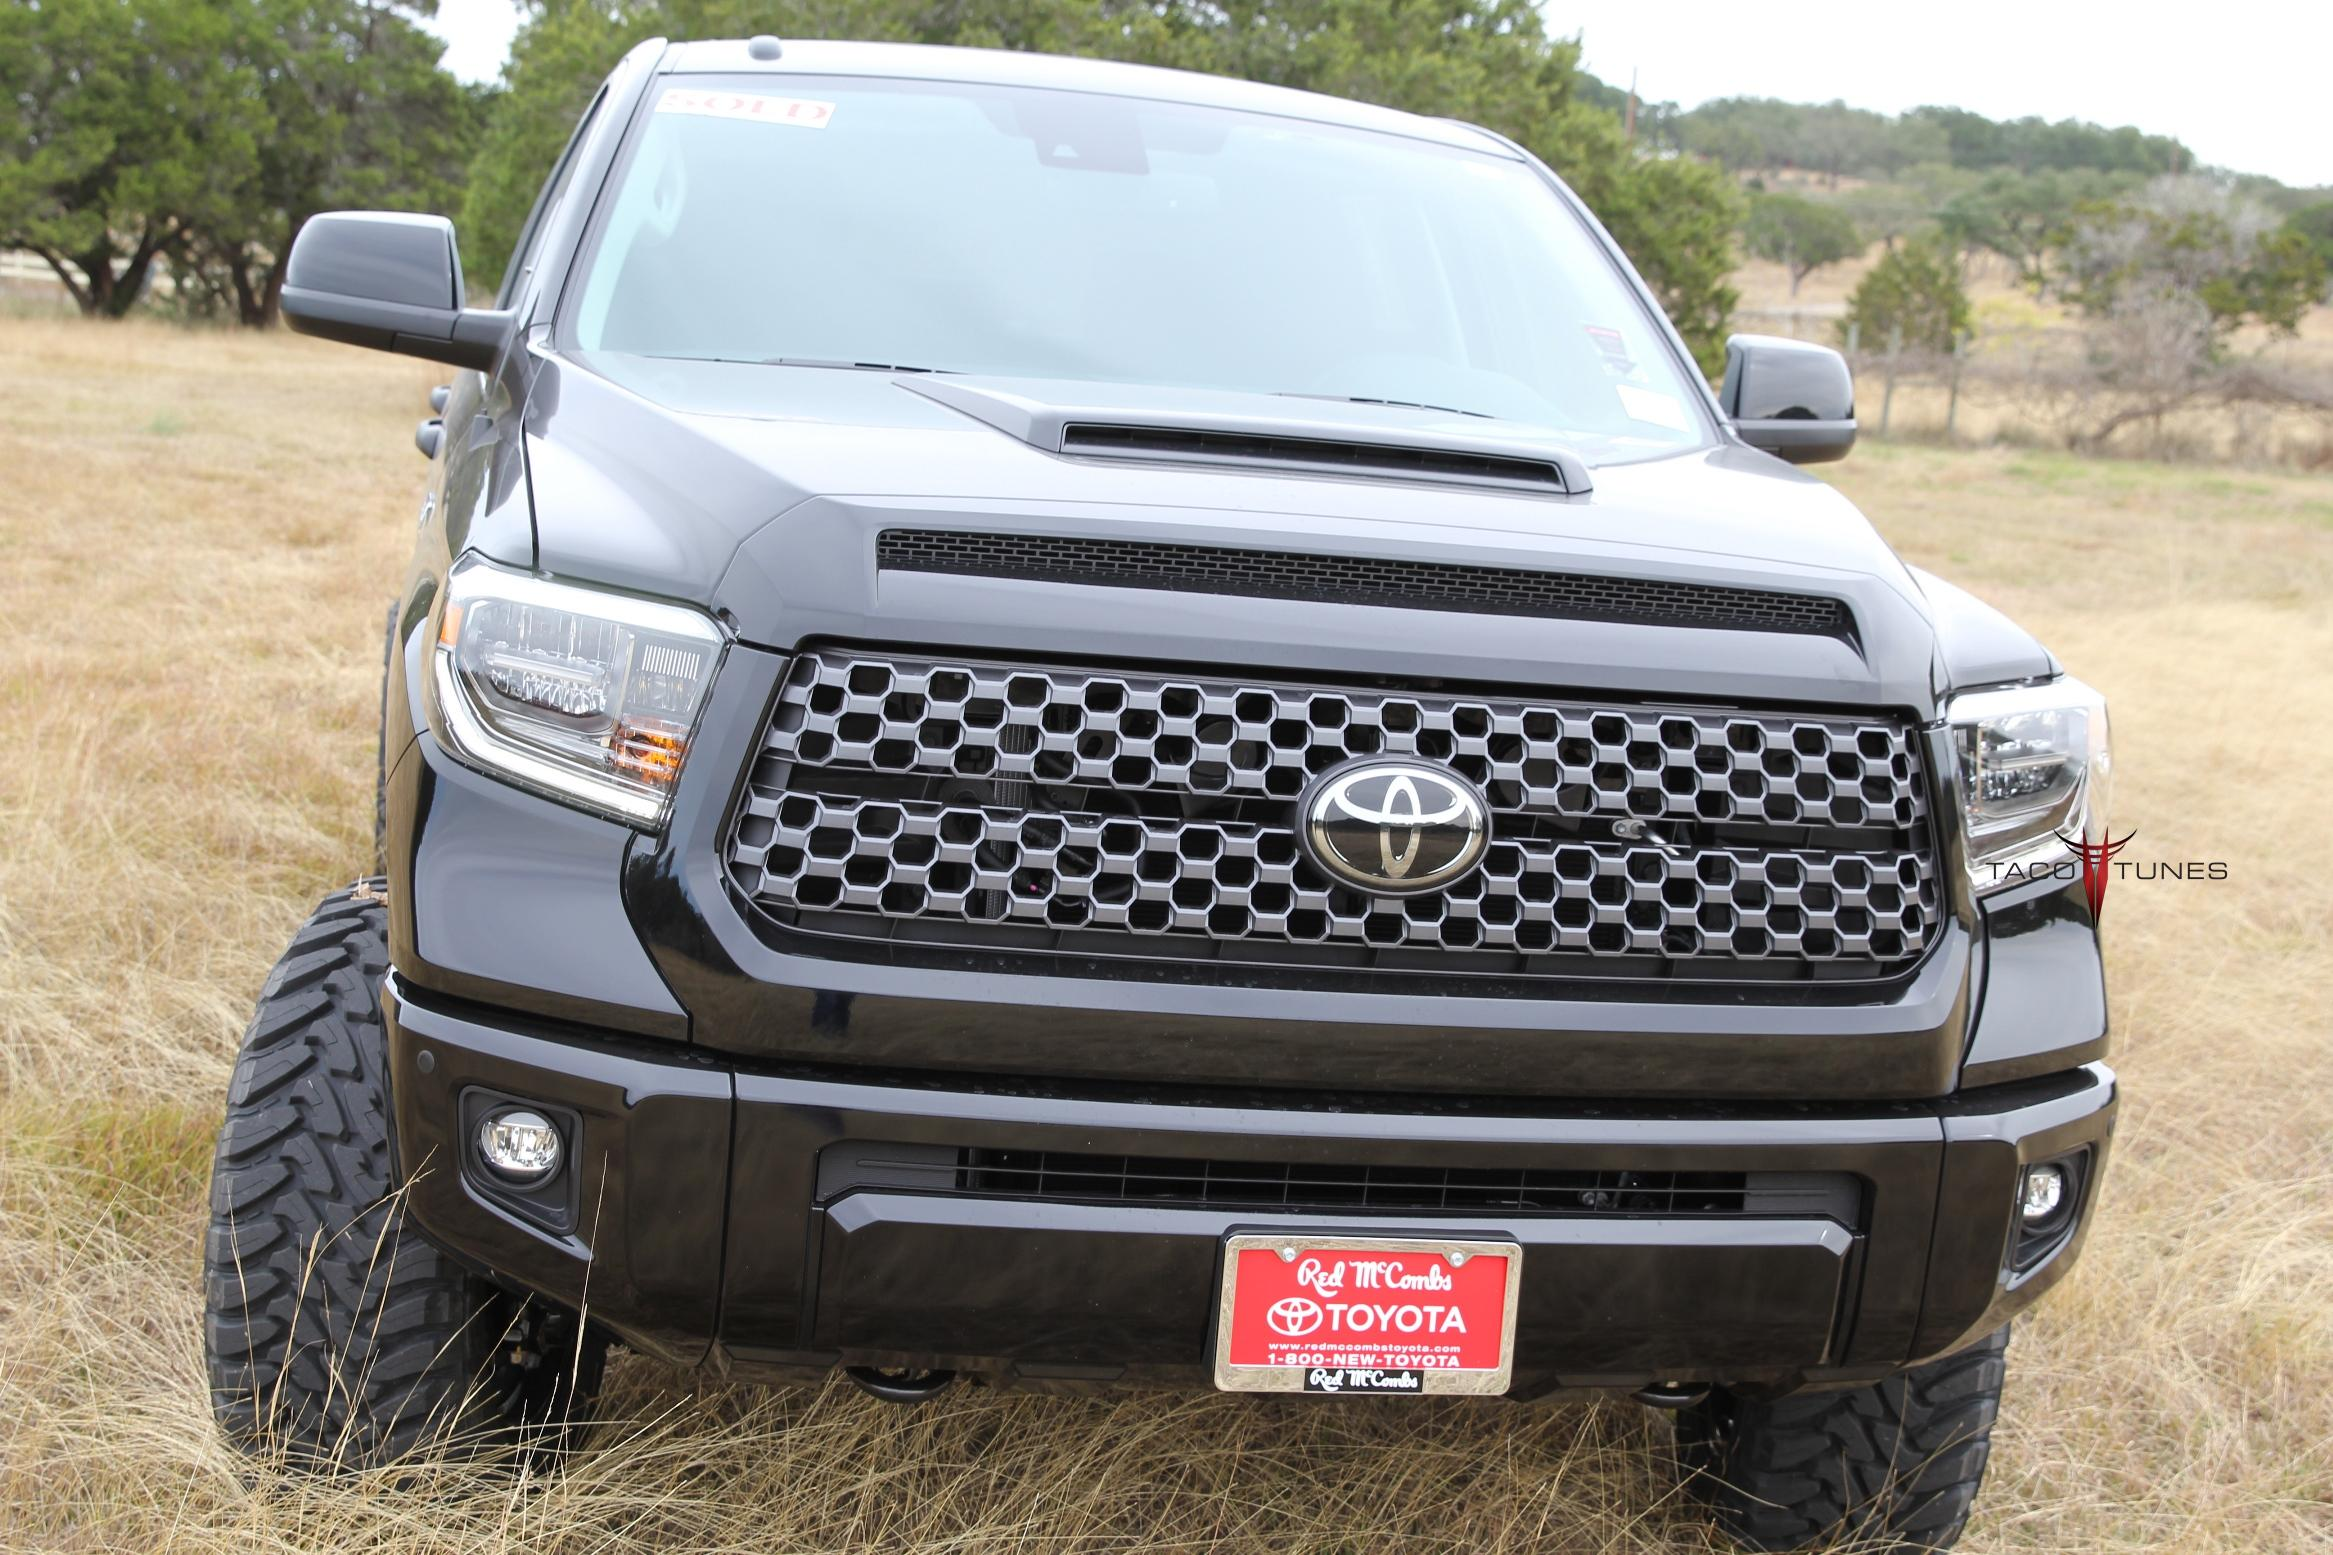 2018 toyota tundra trd sport 4x4 9 taco tunes toyota audio solutions. Black Bedroom Furniture Sets. Home Design Ideas